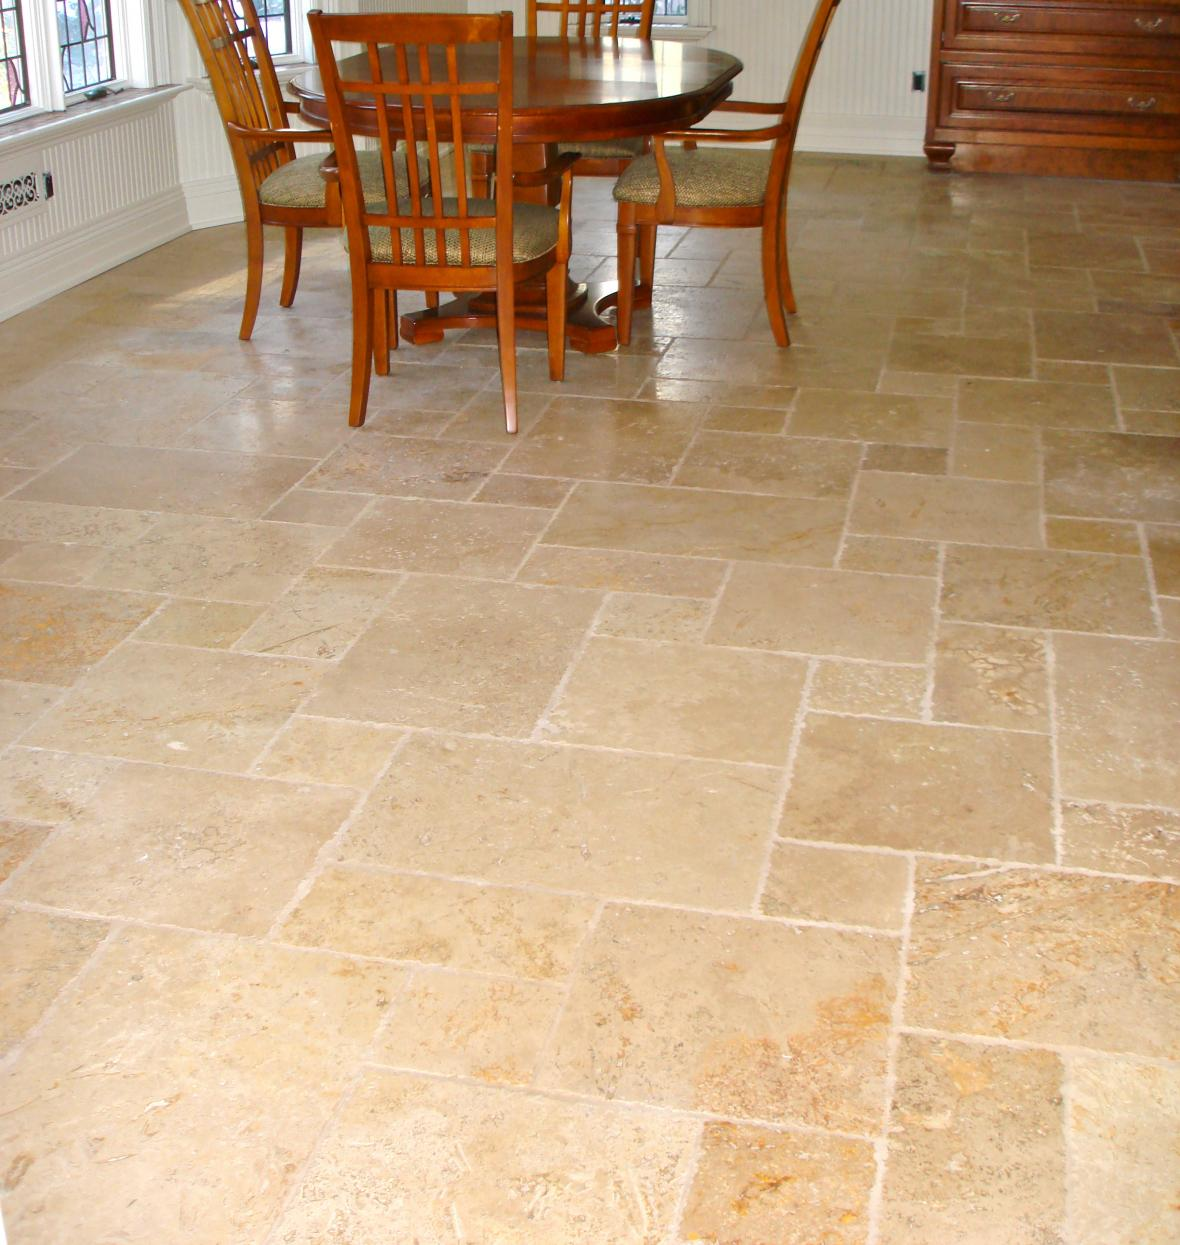 Kitchen Flooring Tiles Kitchen Flooring Tiles All About Flooring Designs